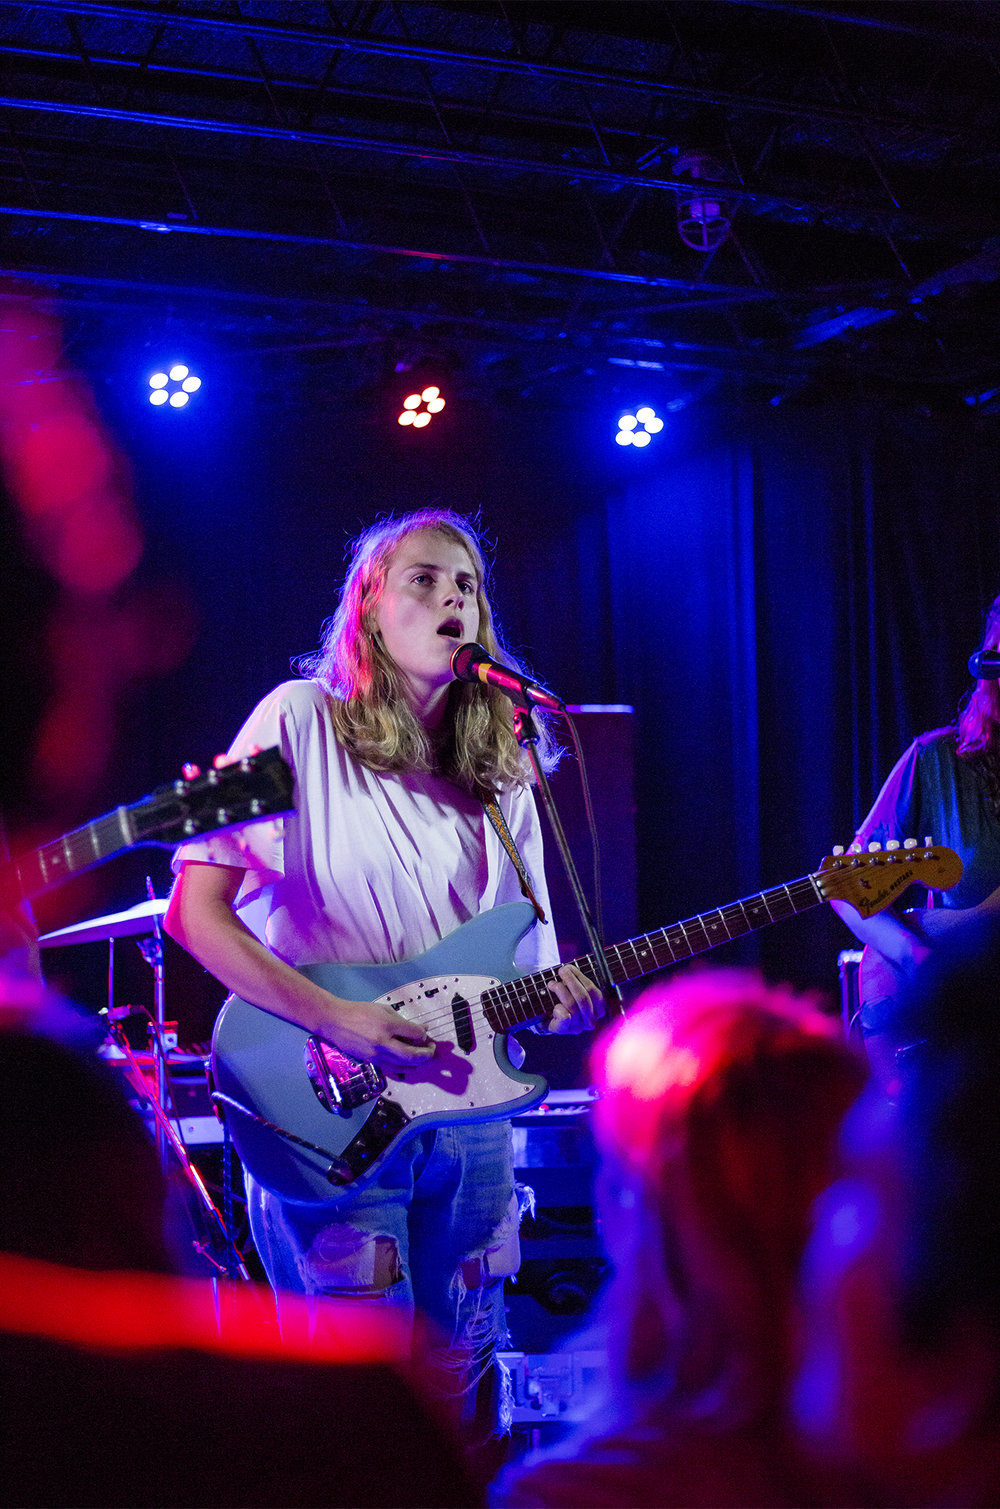 Marika Hackman (by Morgan Winston)